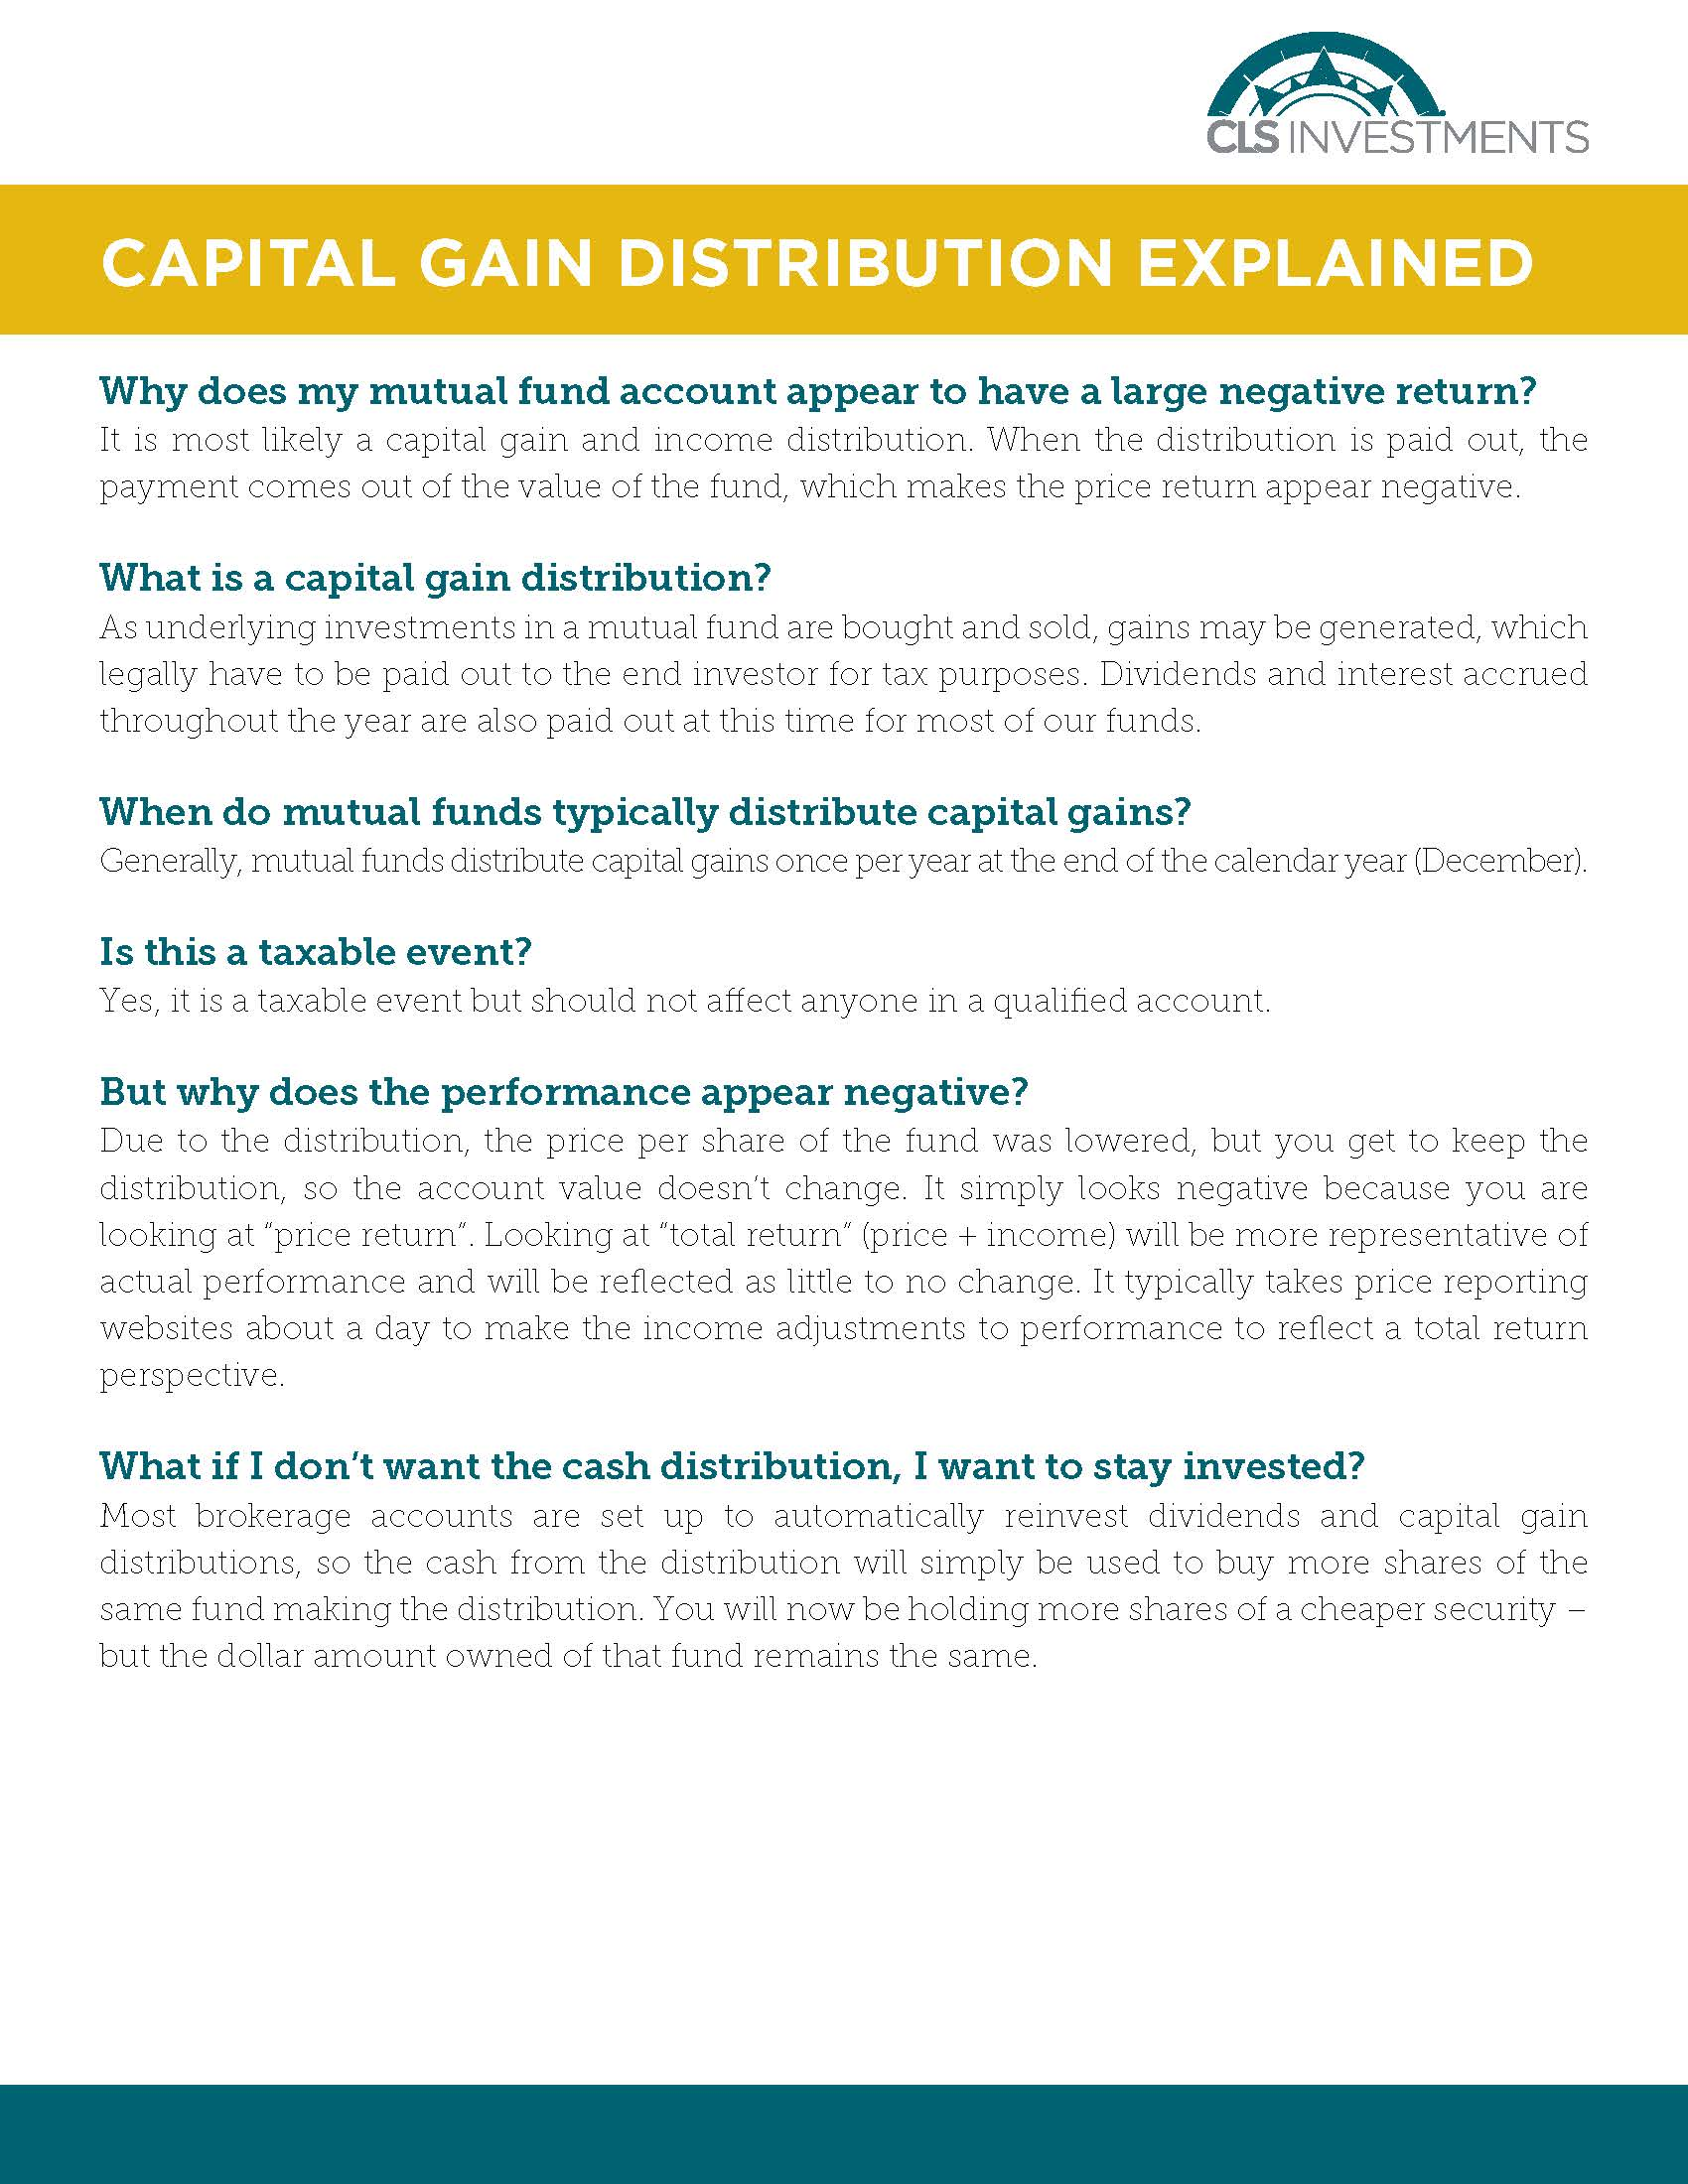 capital-gain-distribution-explained-public_page_1